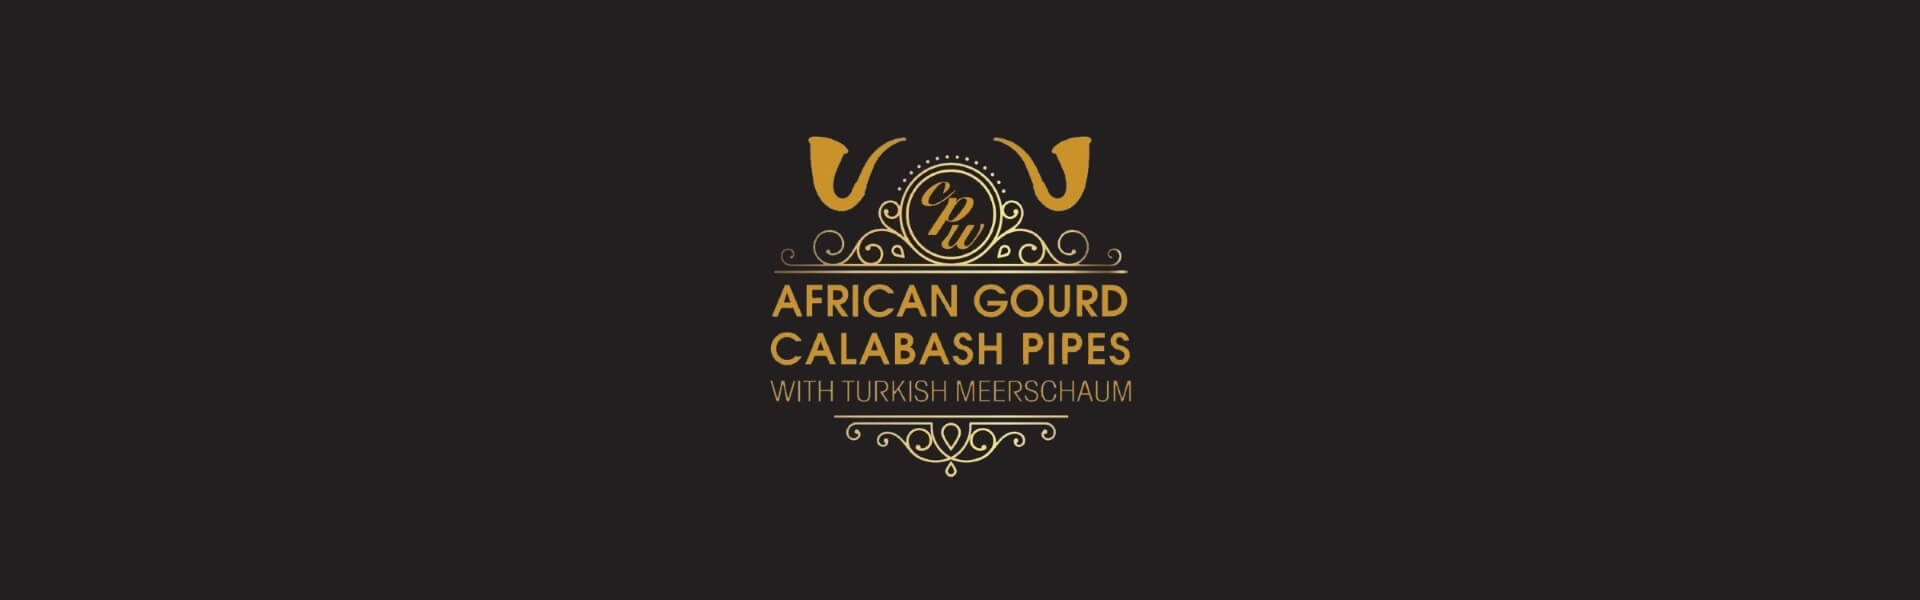 CPW Calabash Pipes